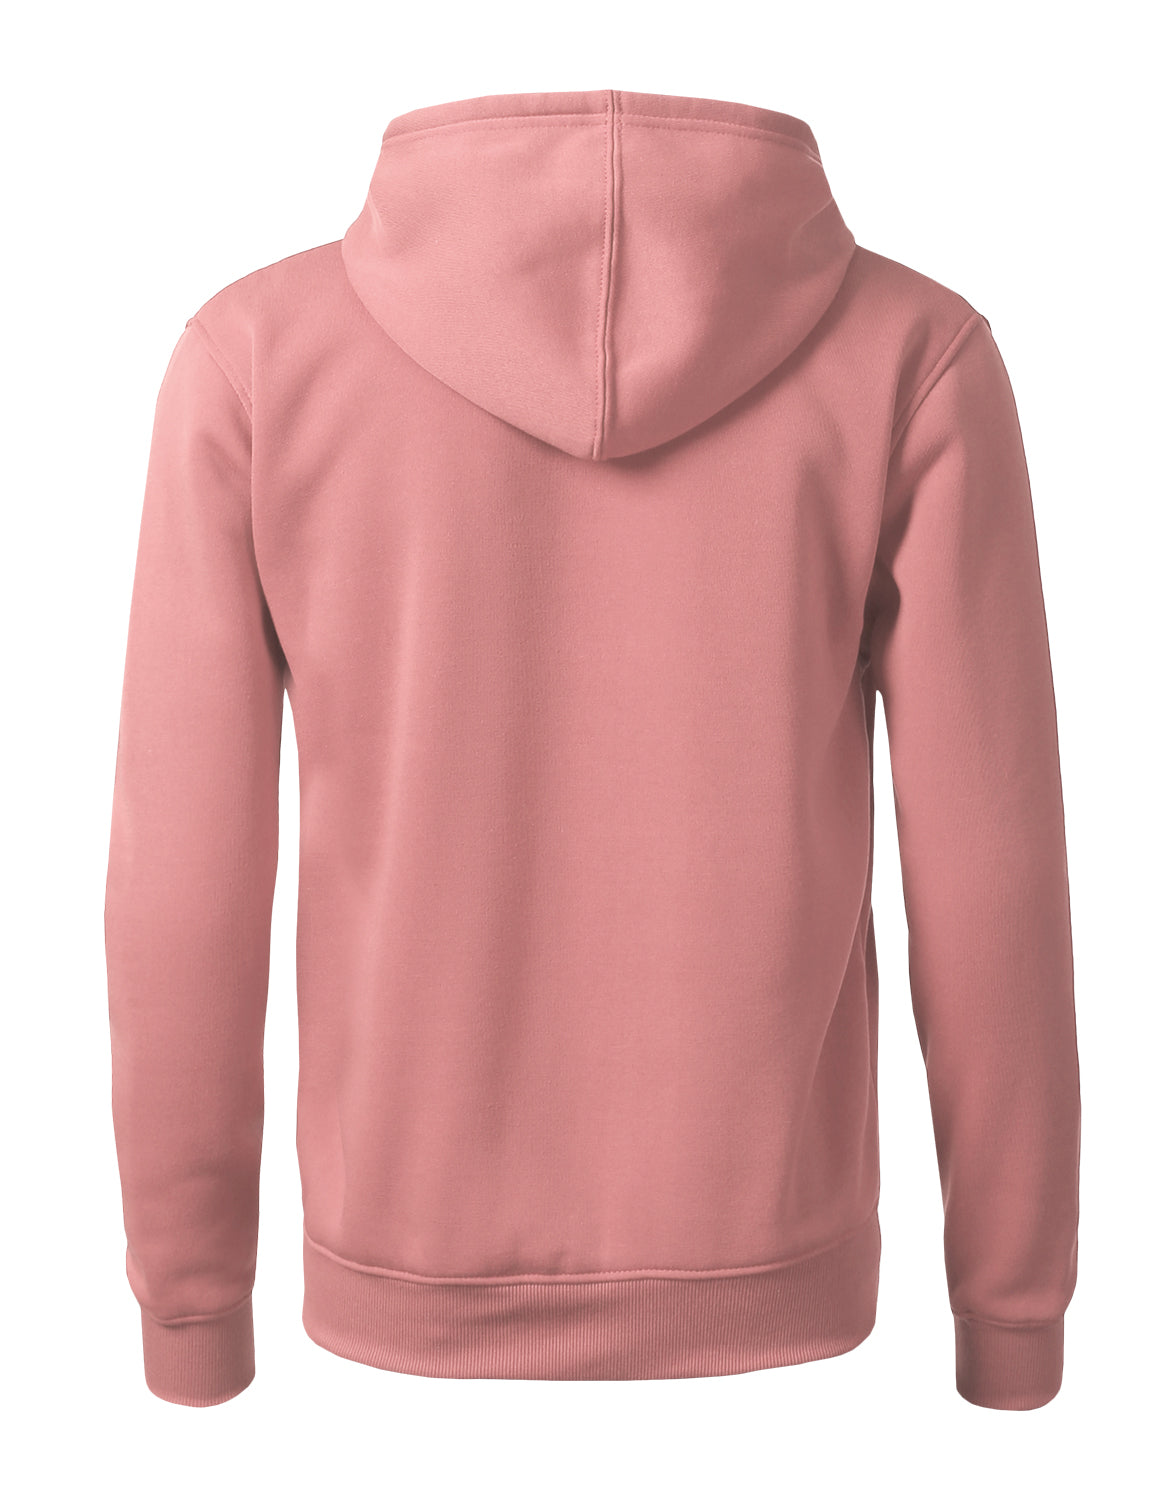 PINK Basic Pullover Fleece Hoodie - URBANCREWS